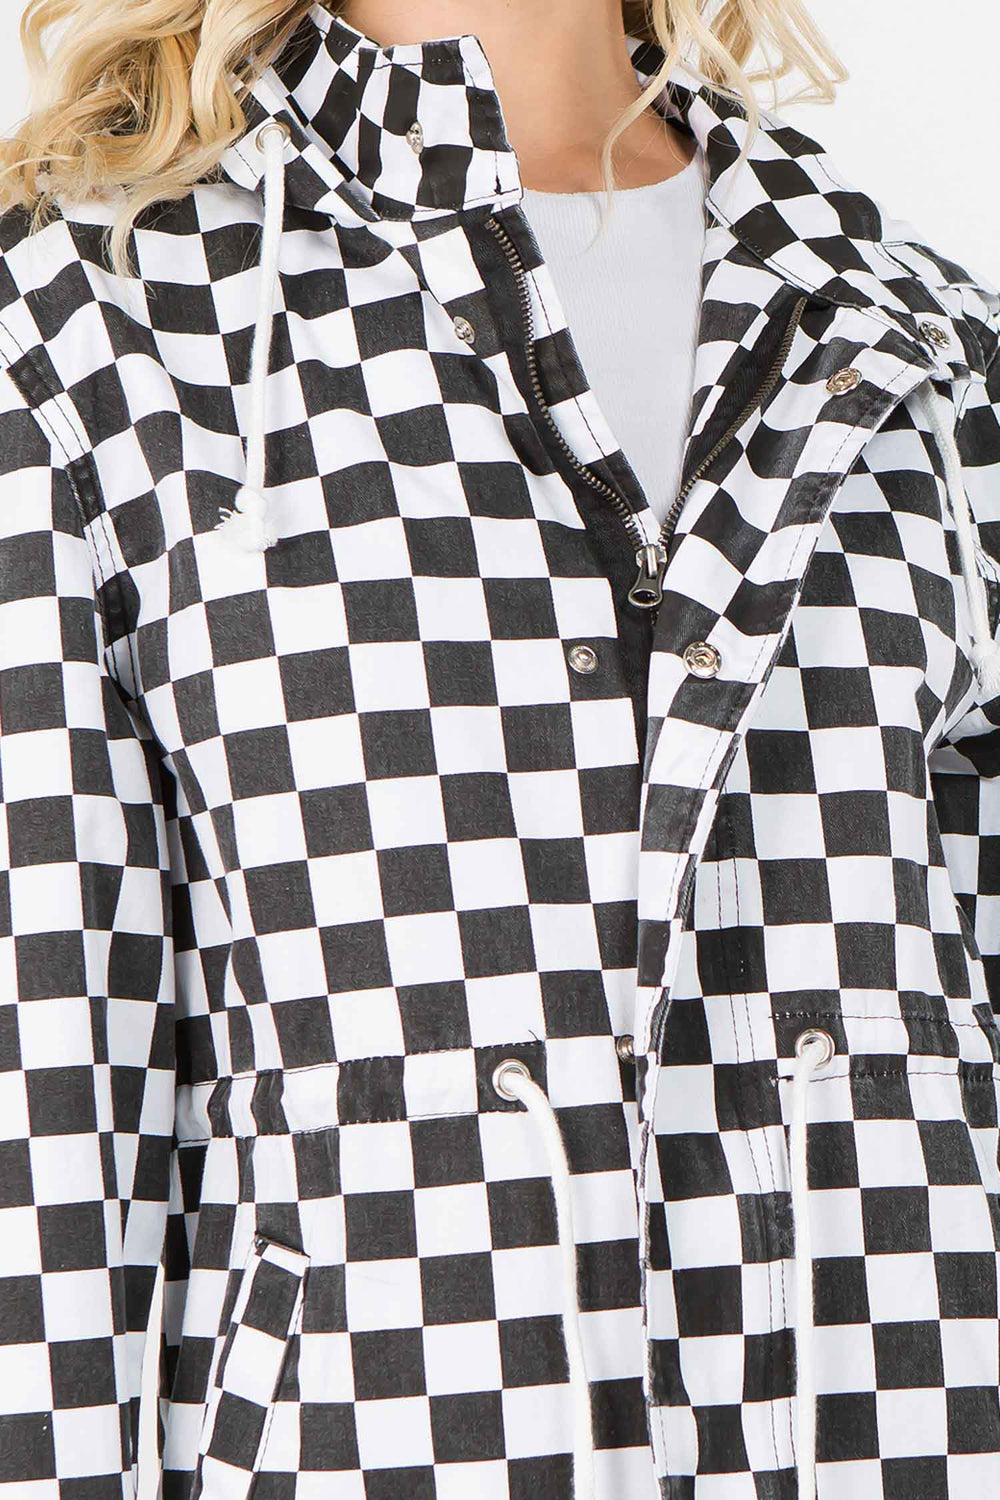 Checker Print Hoodie Zipper Closure Jacket  l  LoveModa